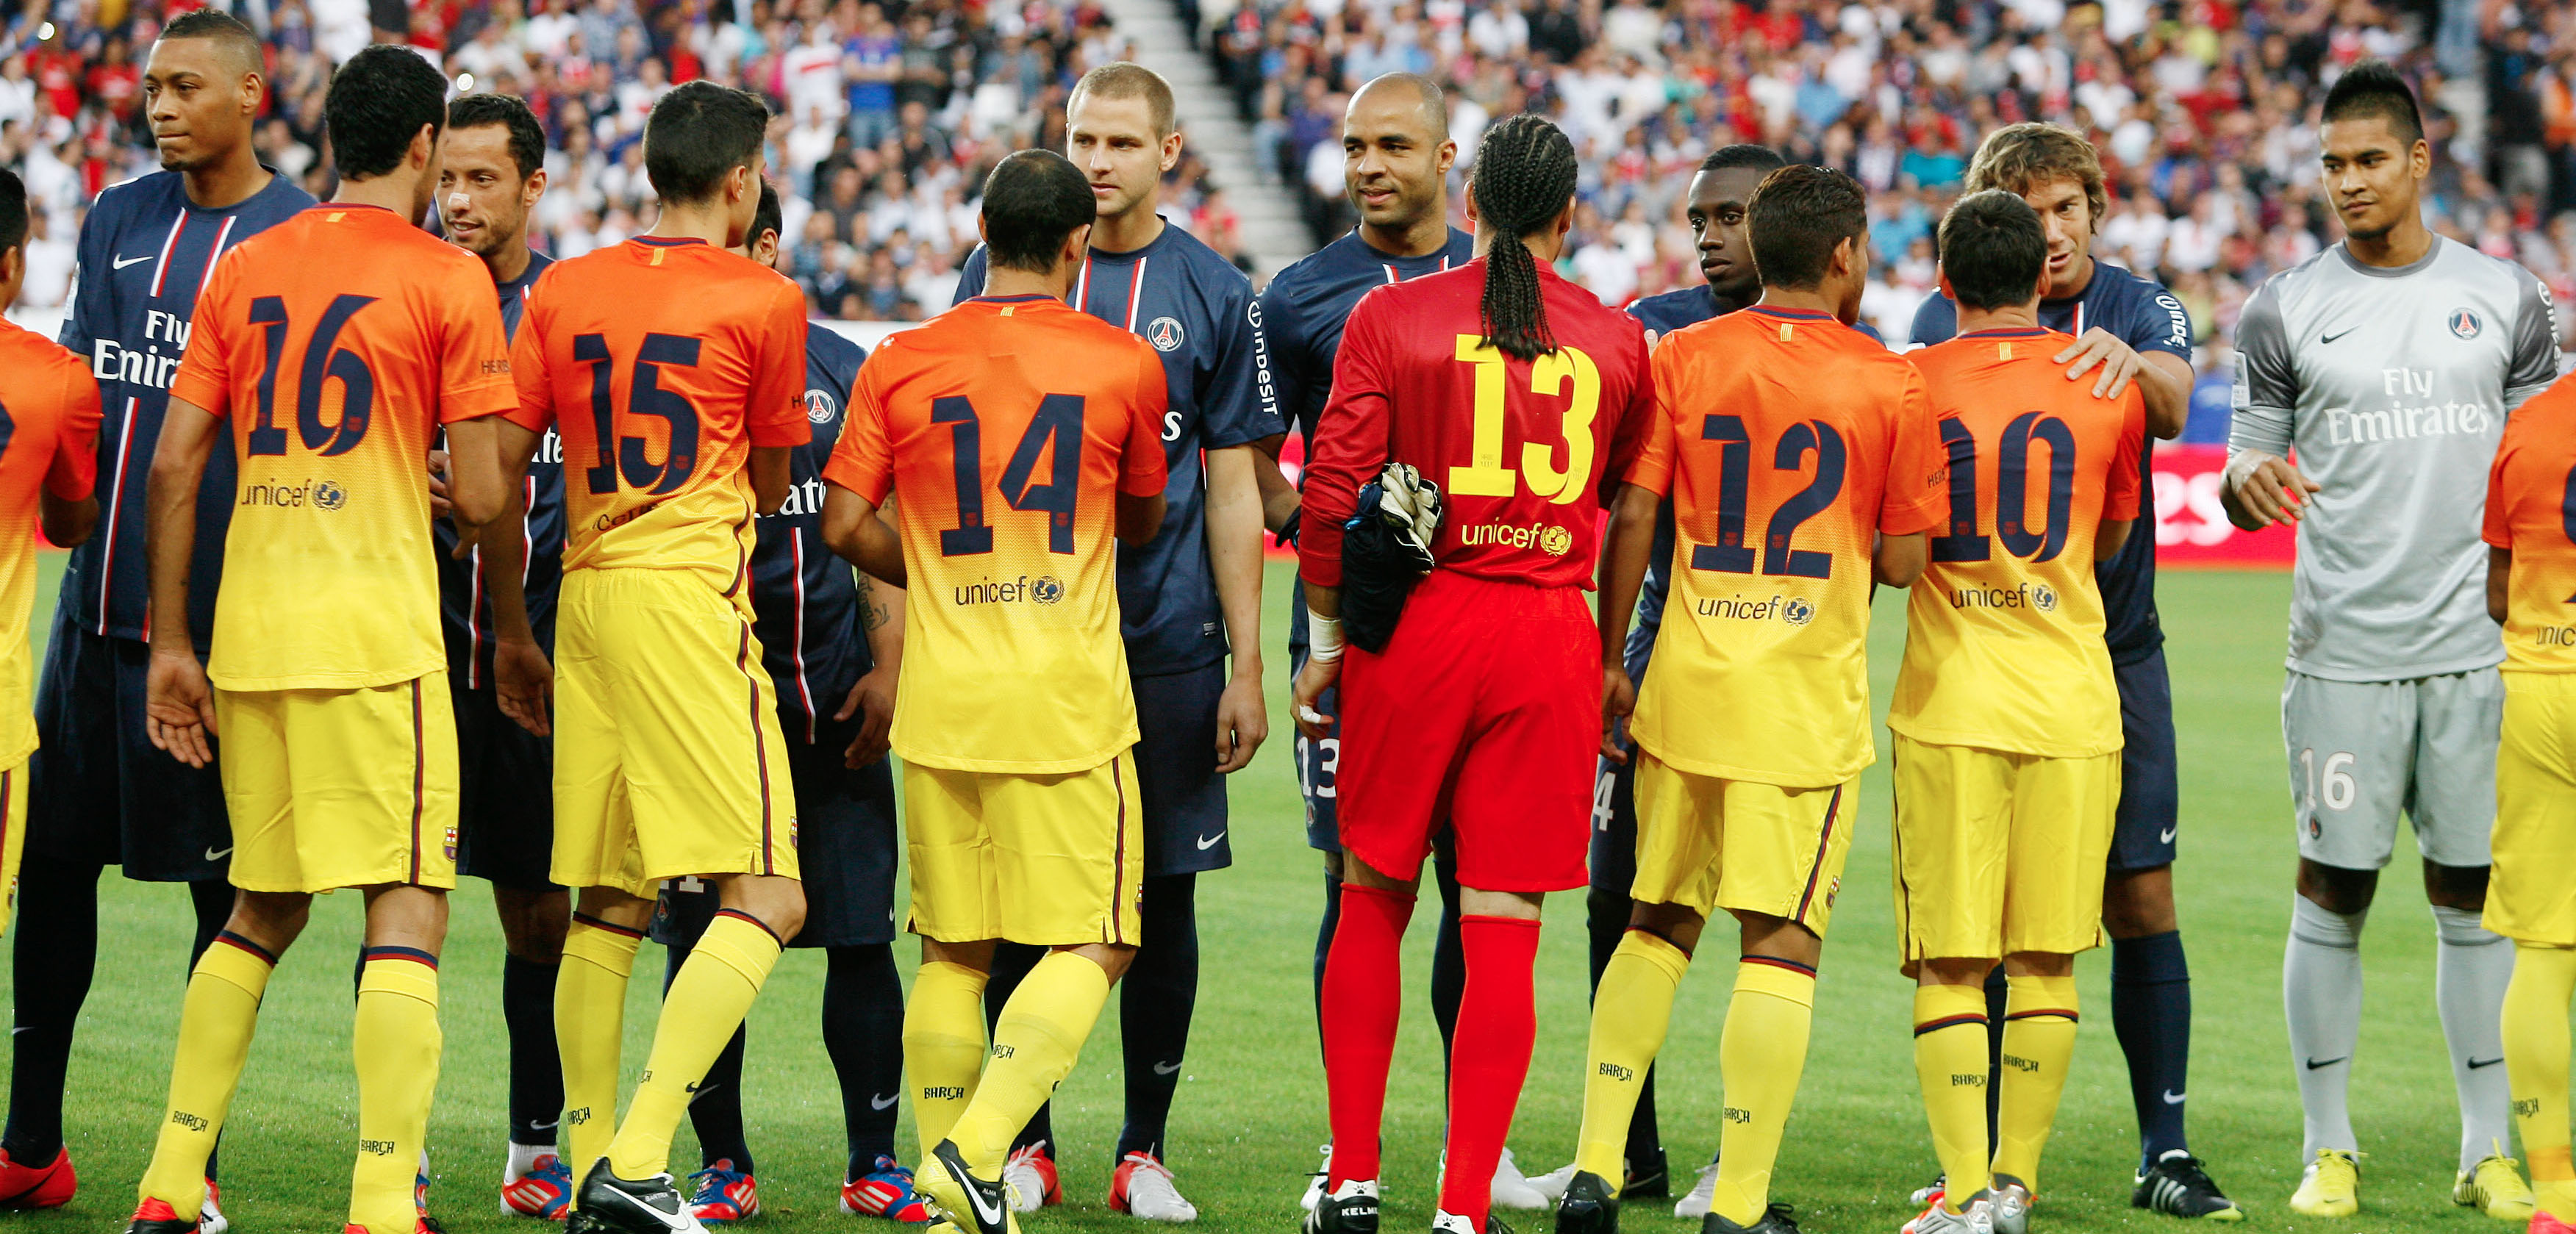 rencontre psg barcelone en direct Les Abymes